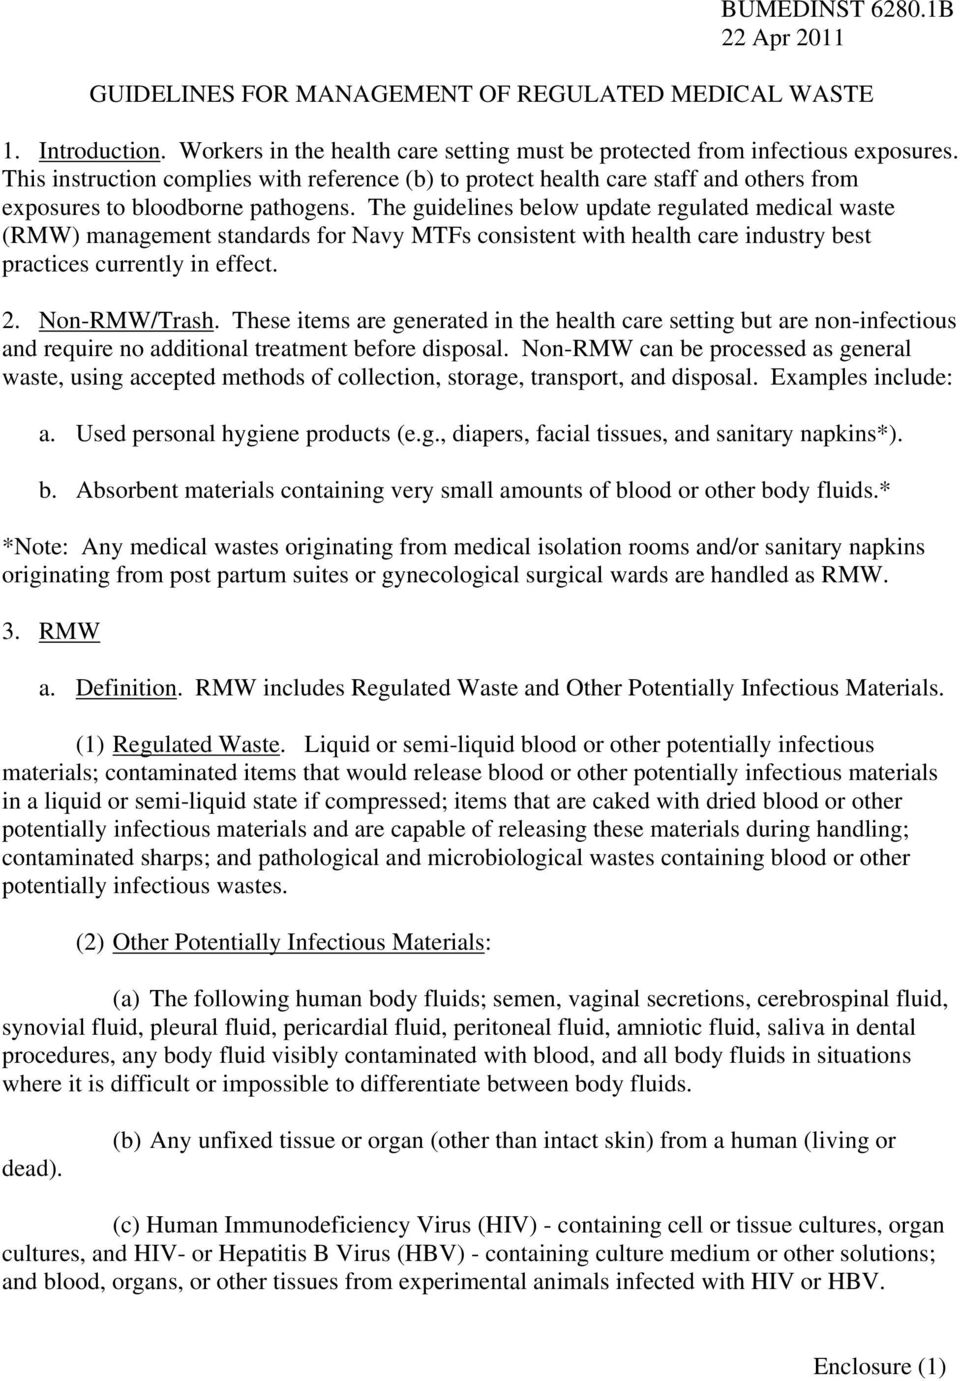 The guidelines below update regulated medical waste (RMW) management standards for Navy MTFs consistent with health care industry best practices currently in effect. 2. Non-RMW/Trash.